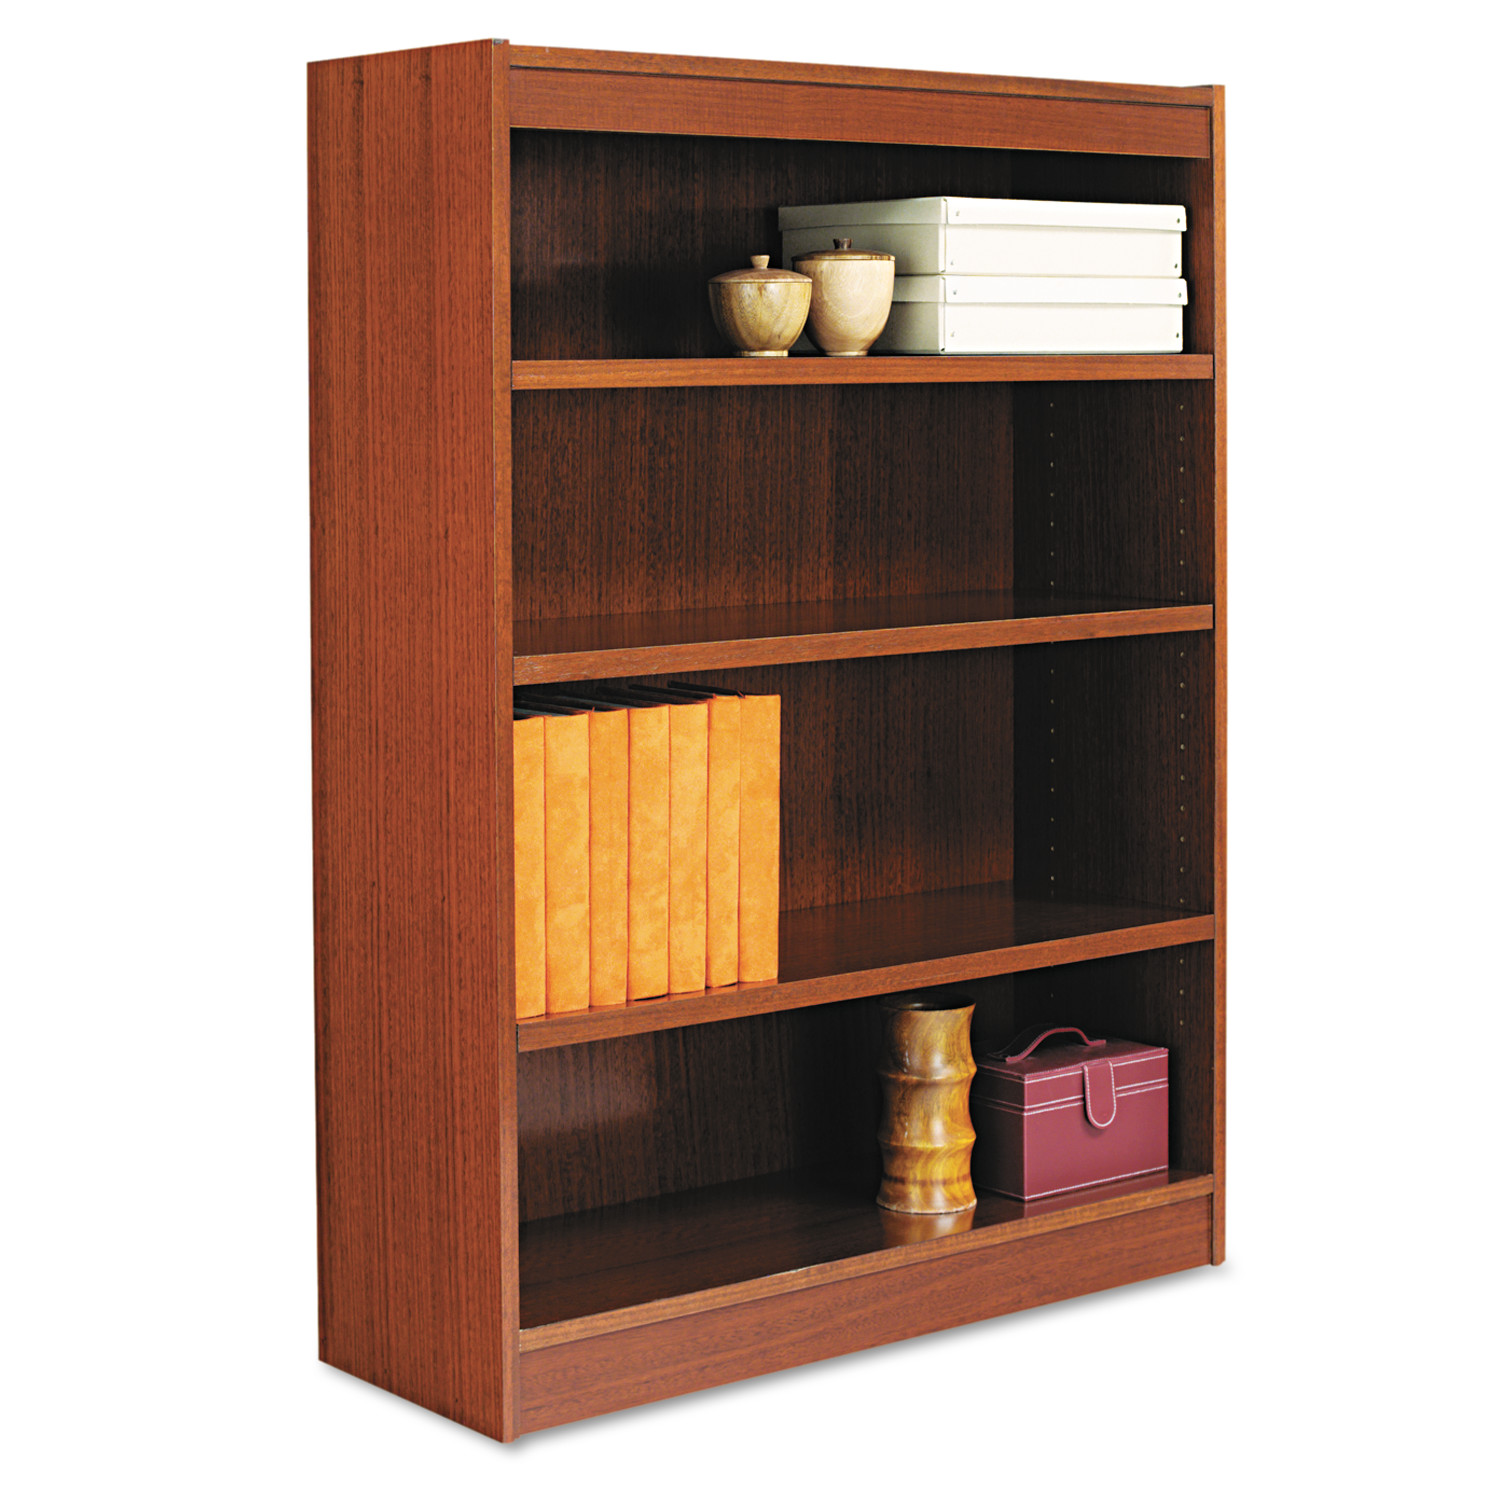 Alera Square Corner Wood Bookcase, Four-Shelf, 35-5 8w x 11-3 4d x 48h, Medium Cherry by ALERA